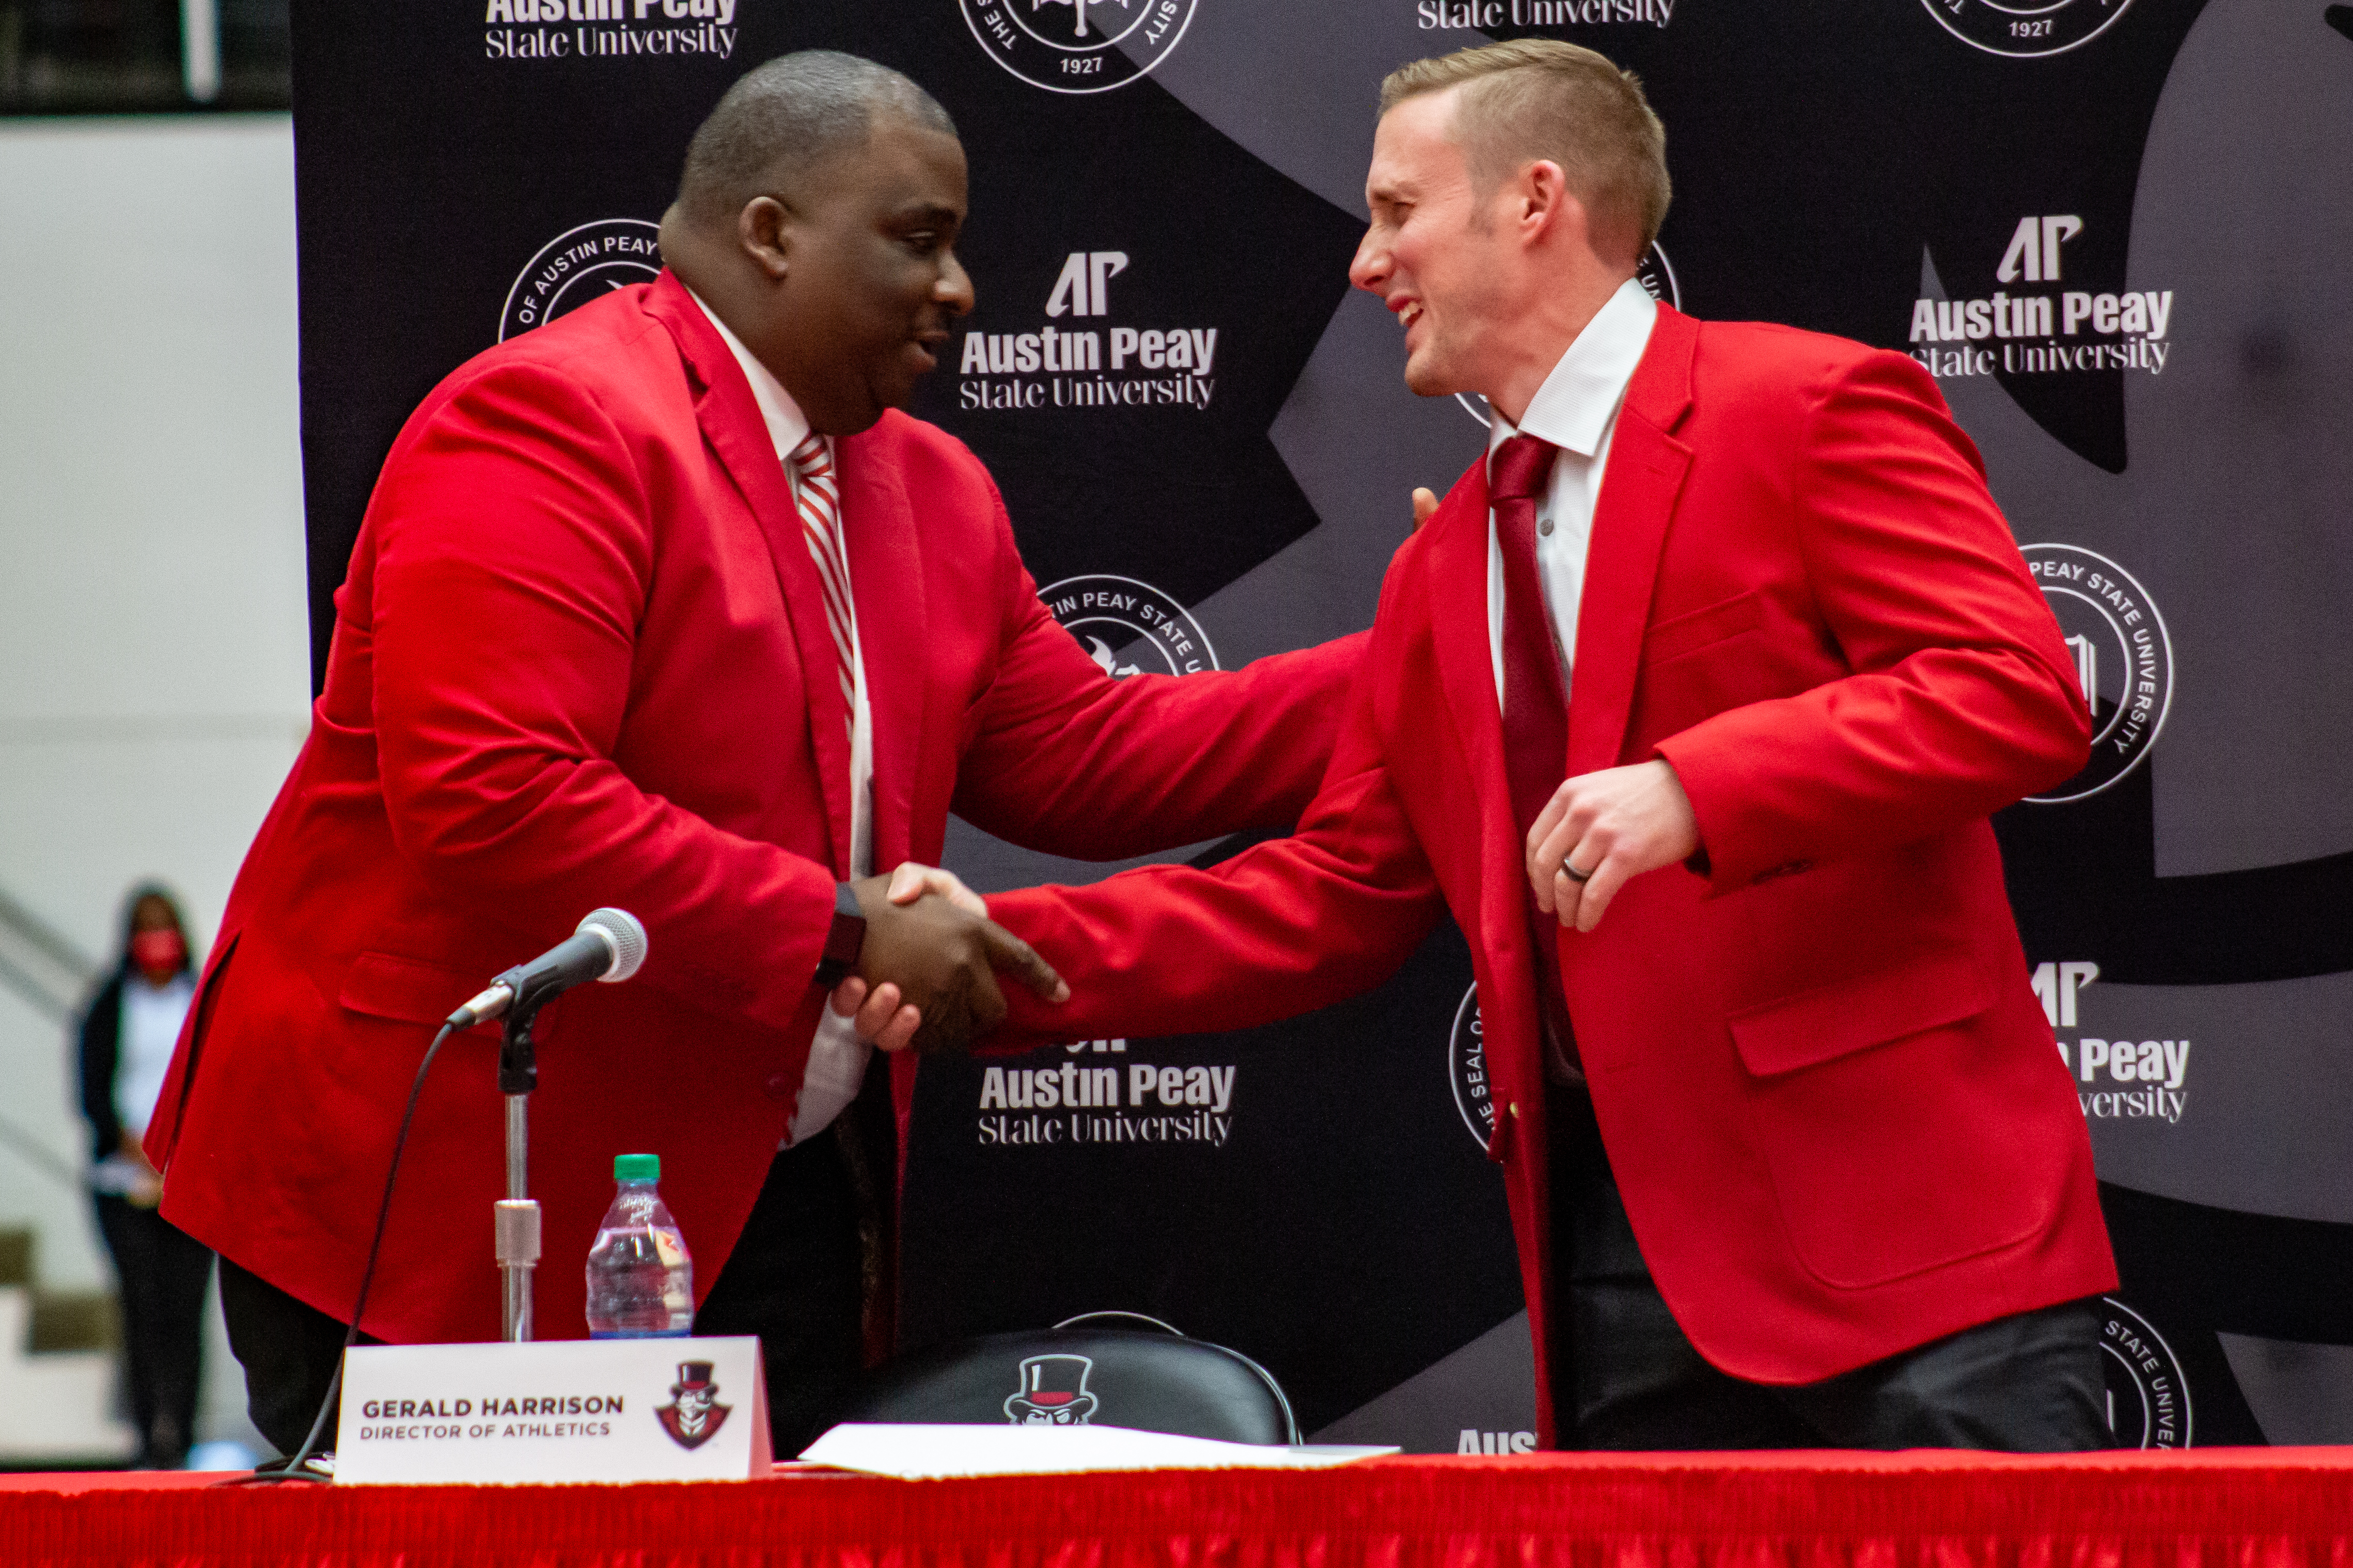 Scotty Walden receives a red jacket from Gerald Harrison at his introductory press conference. NICHOLE BARNES | THE ALL STATE